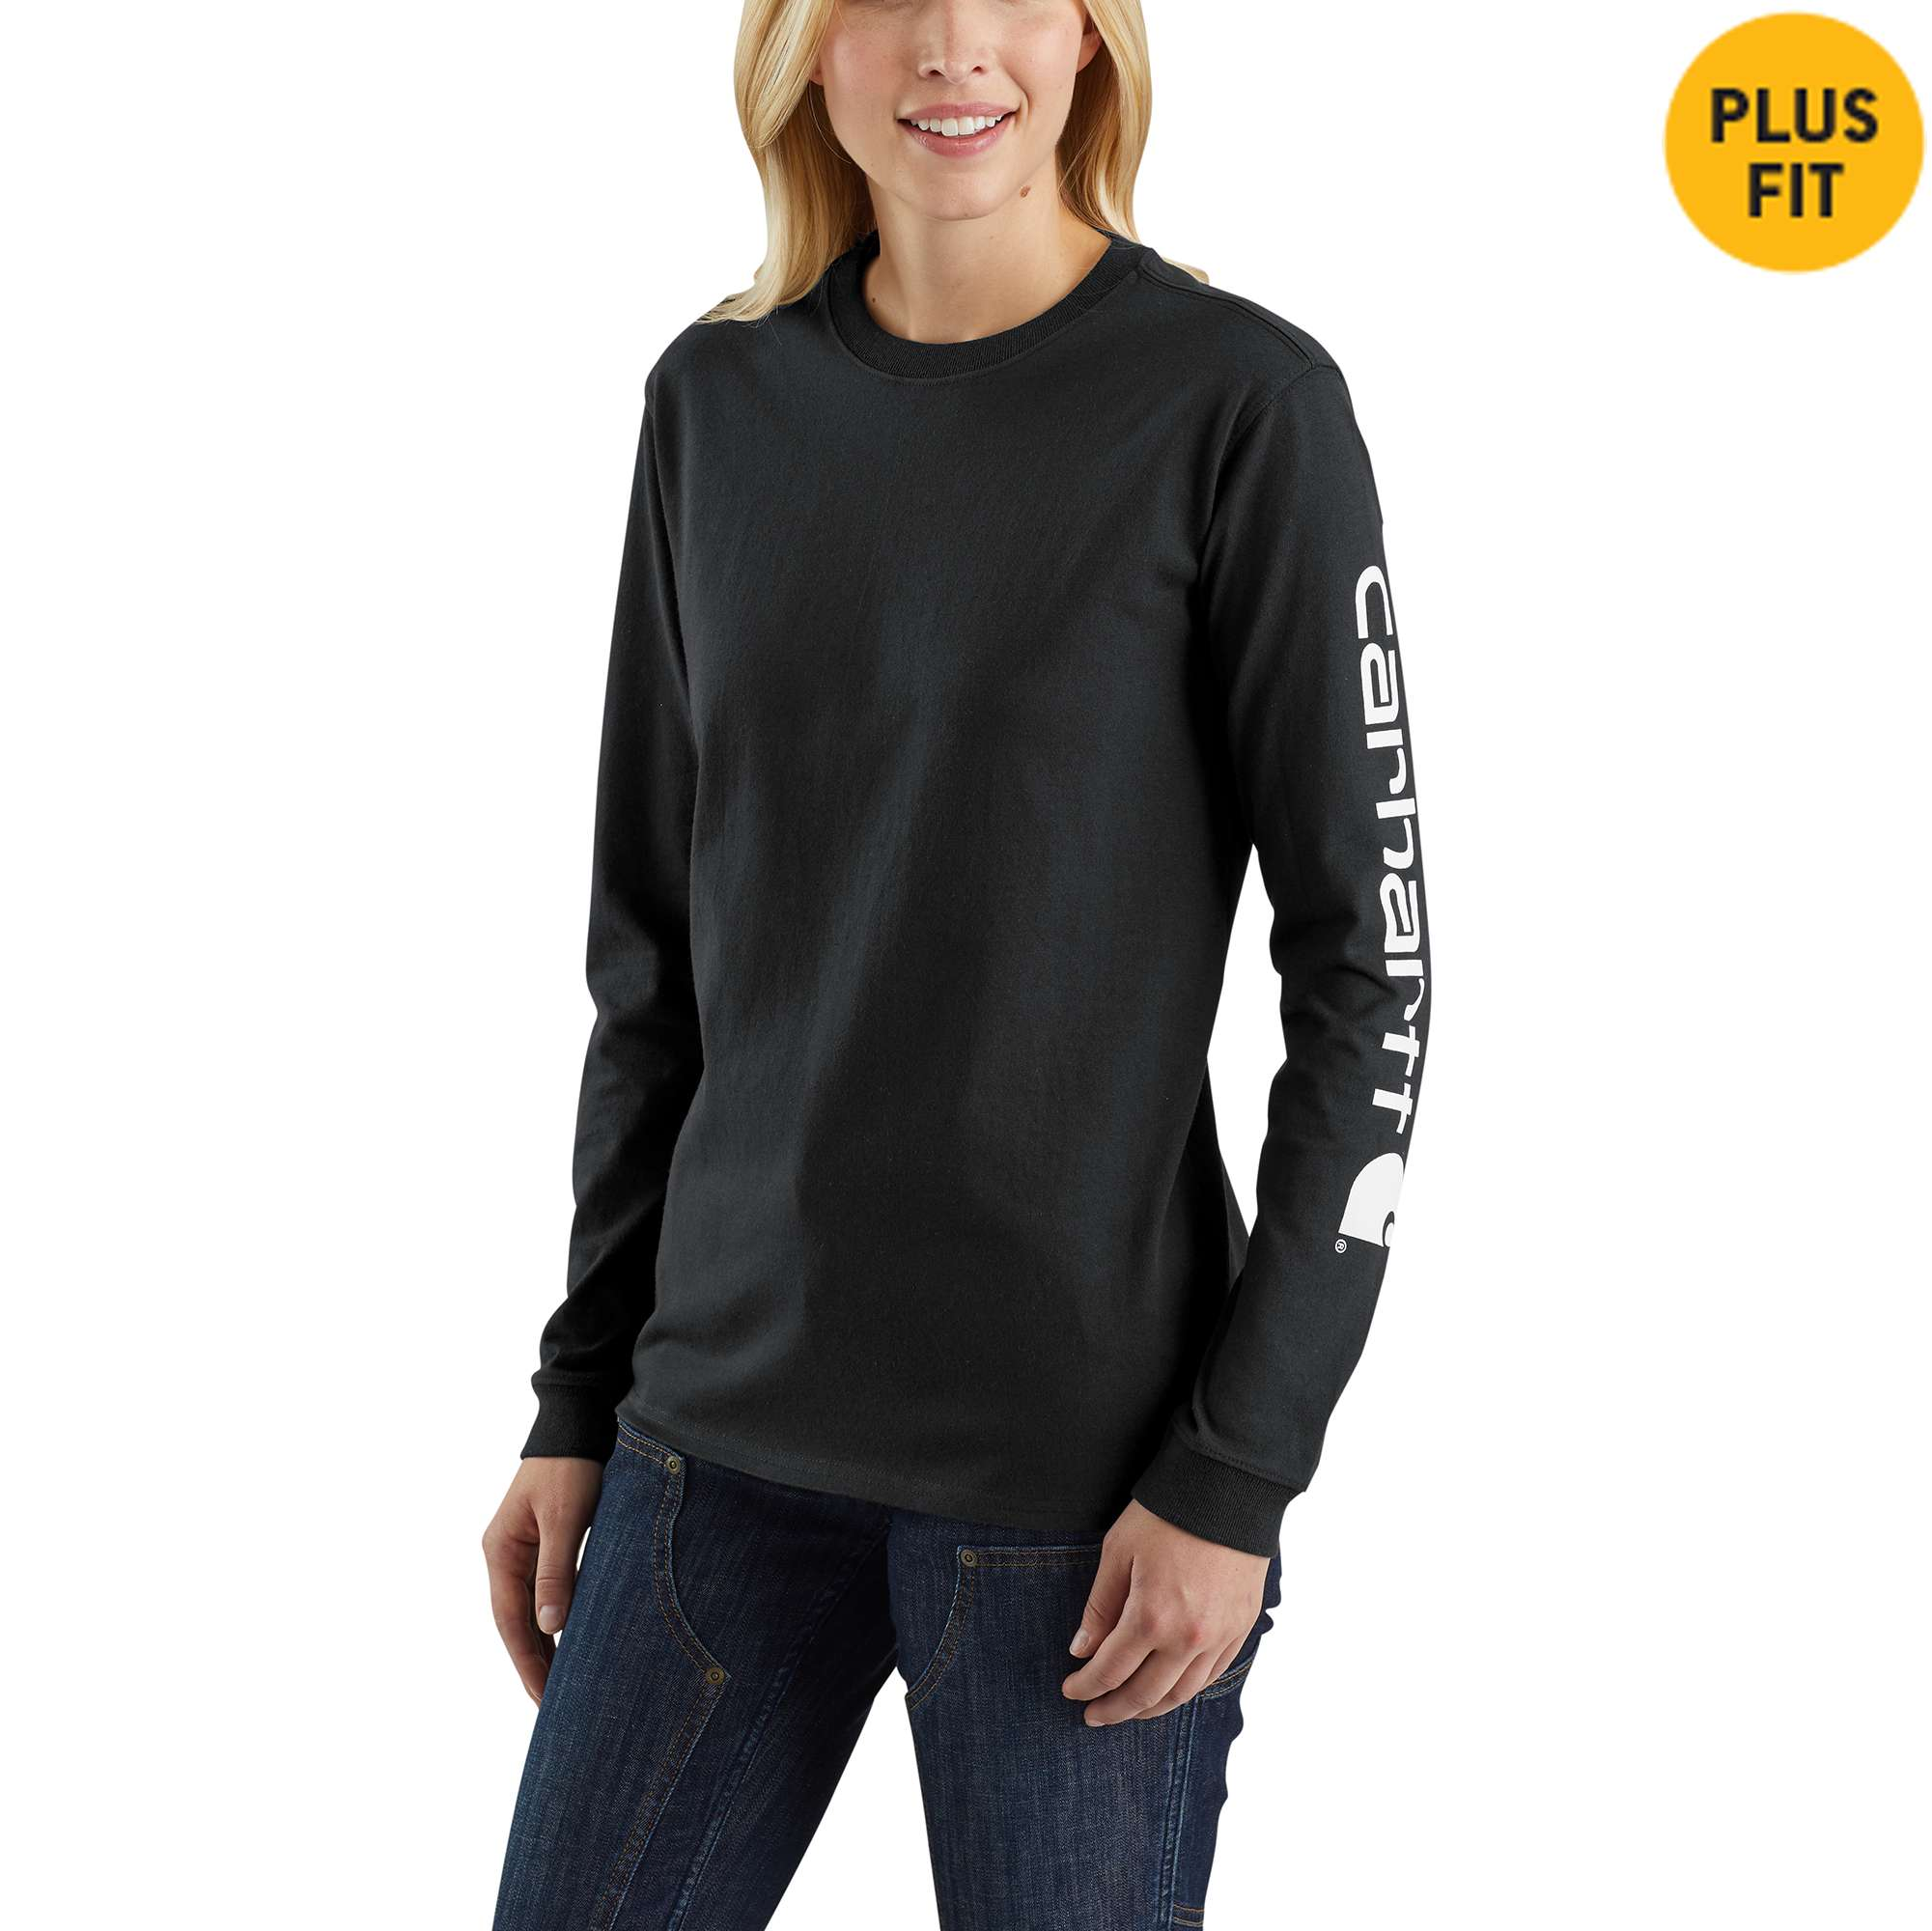 WK231 Workwear Sleeve Logo Long-Sleeve T-Shirt